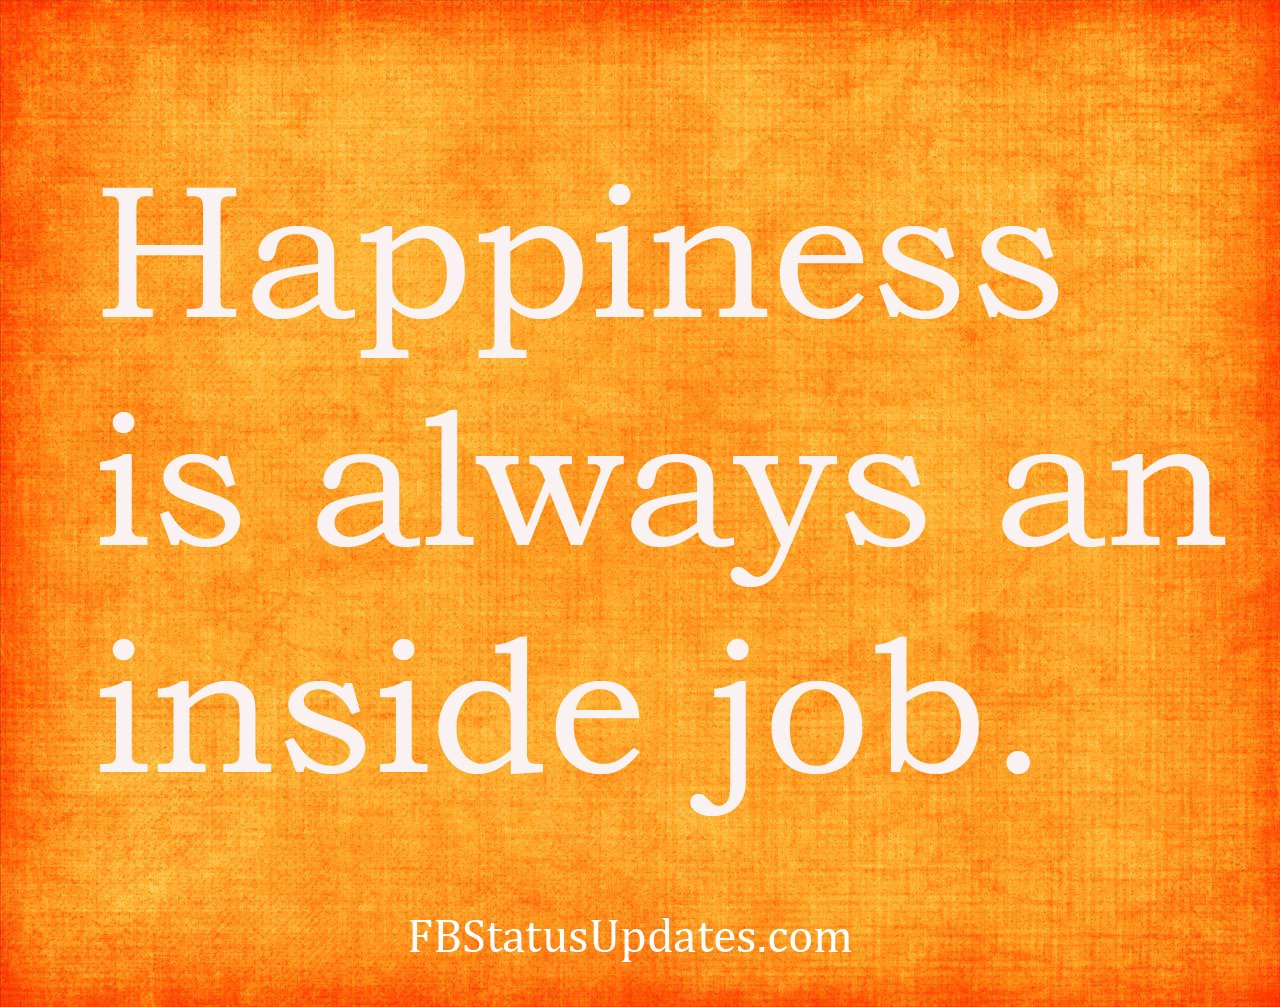 Happiness Quotes: Happy Wednesday Work Quotes. QuotesGram